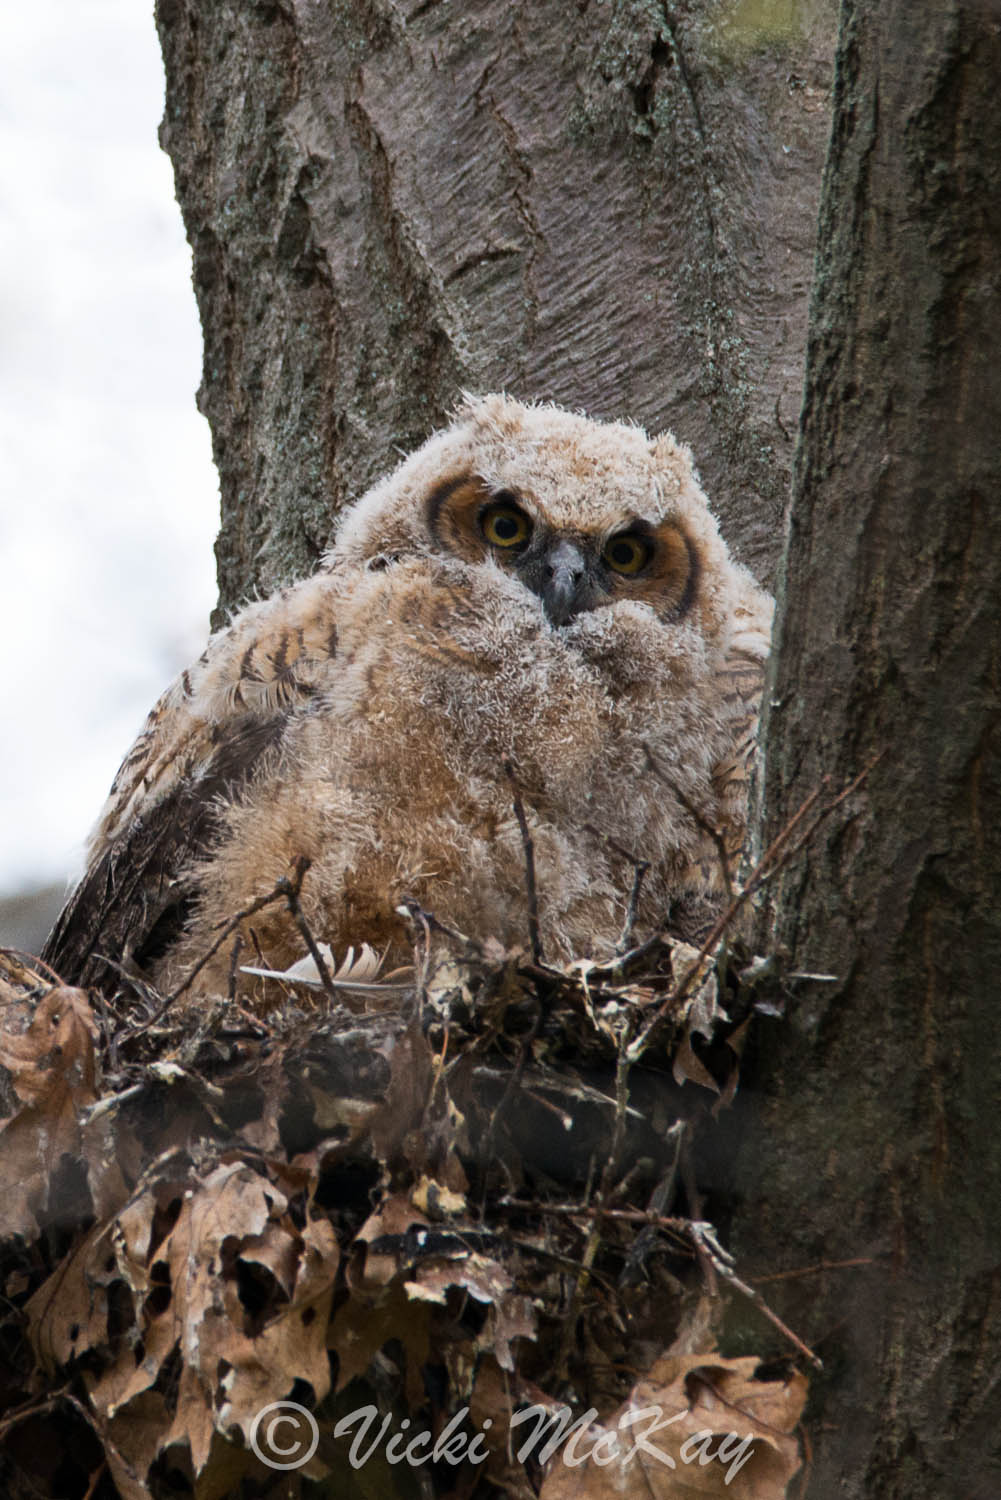 Fluffy baby Great Horned Owl, still in the nest just prior to fledging